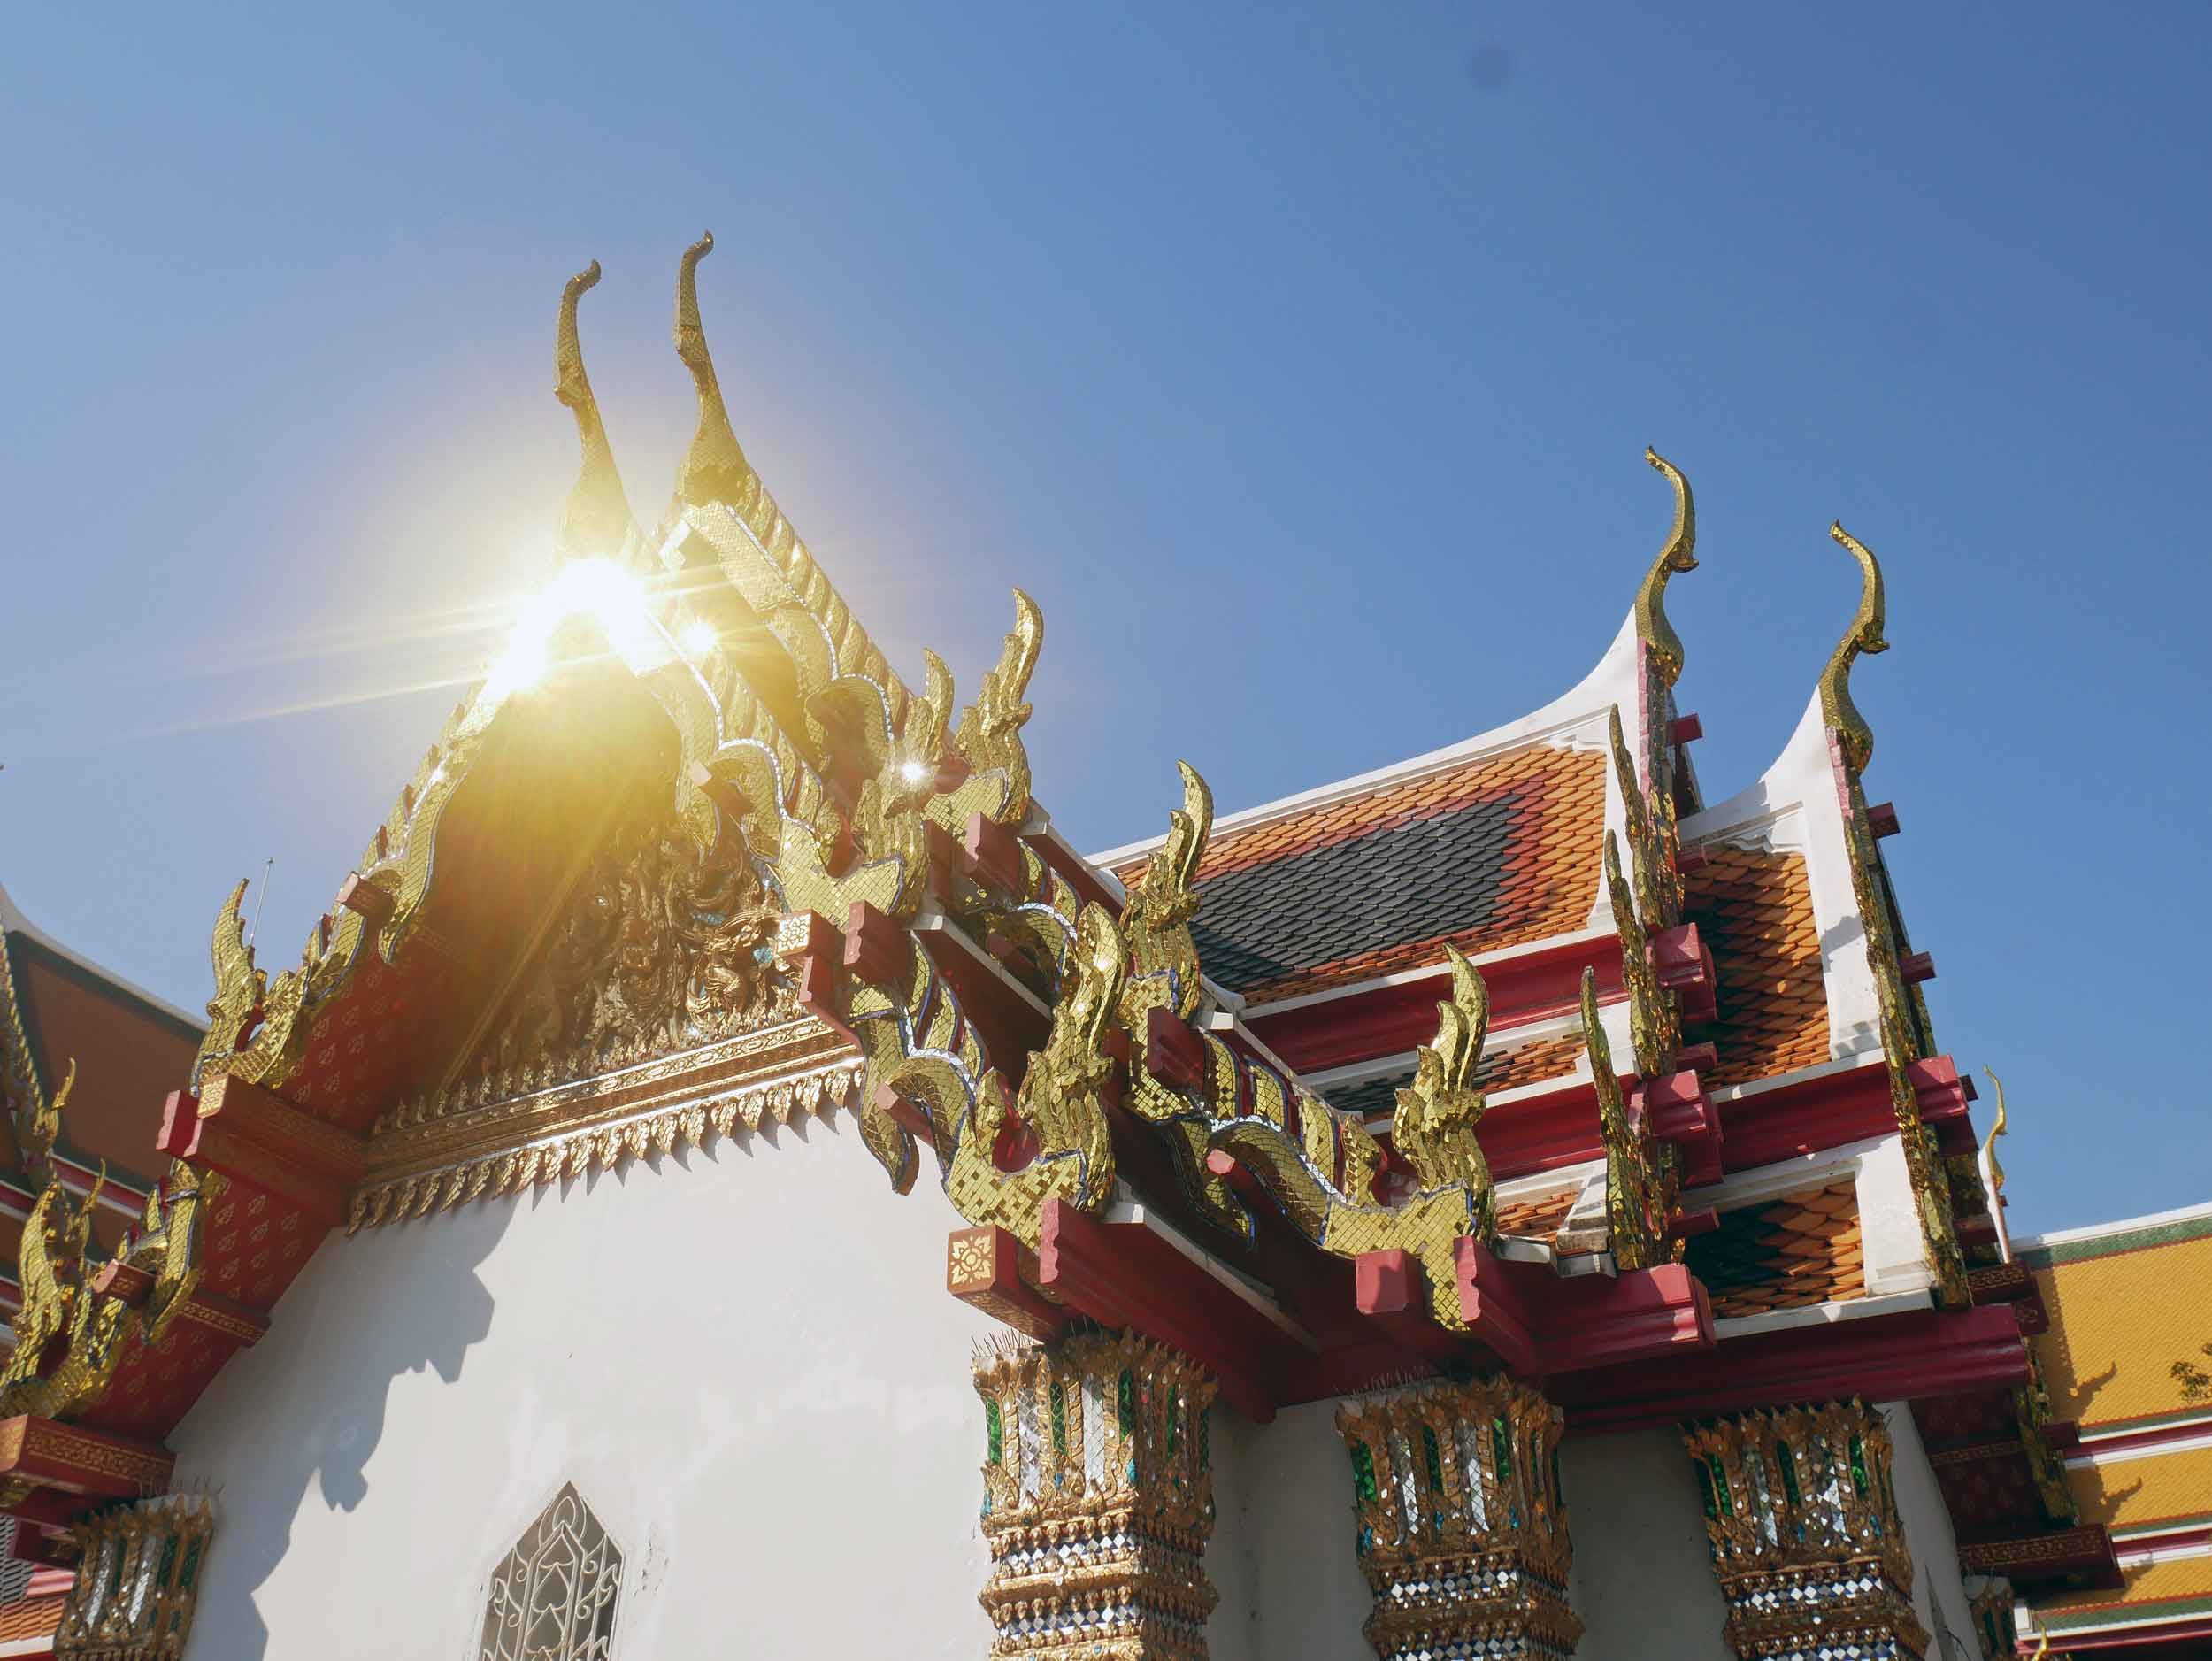 Early morning sun reflecting off one of the many buildings in the Wat Pho temple complex.